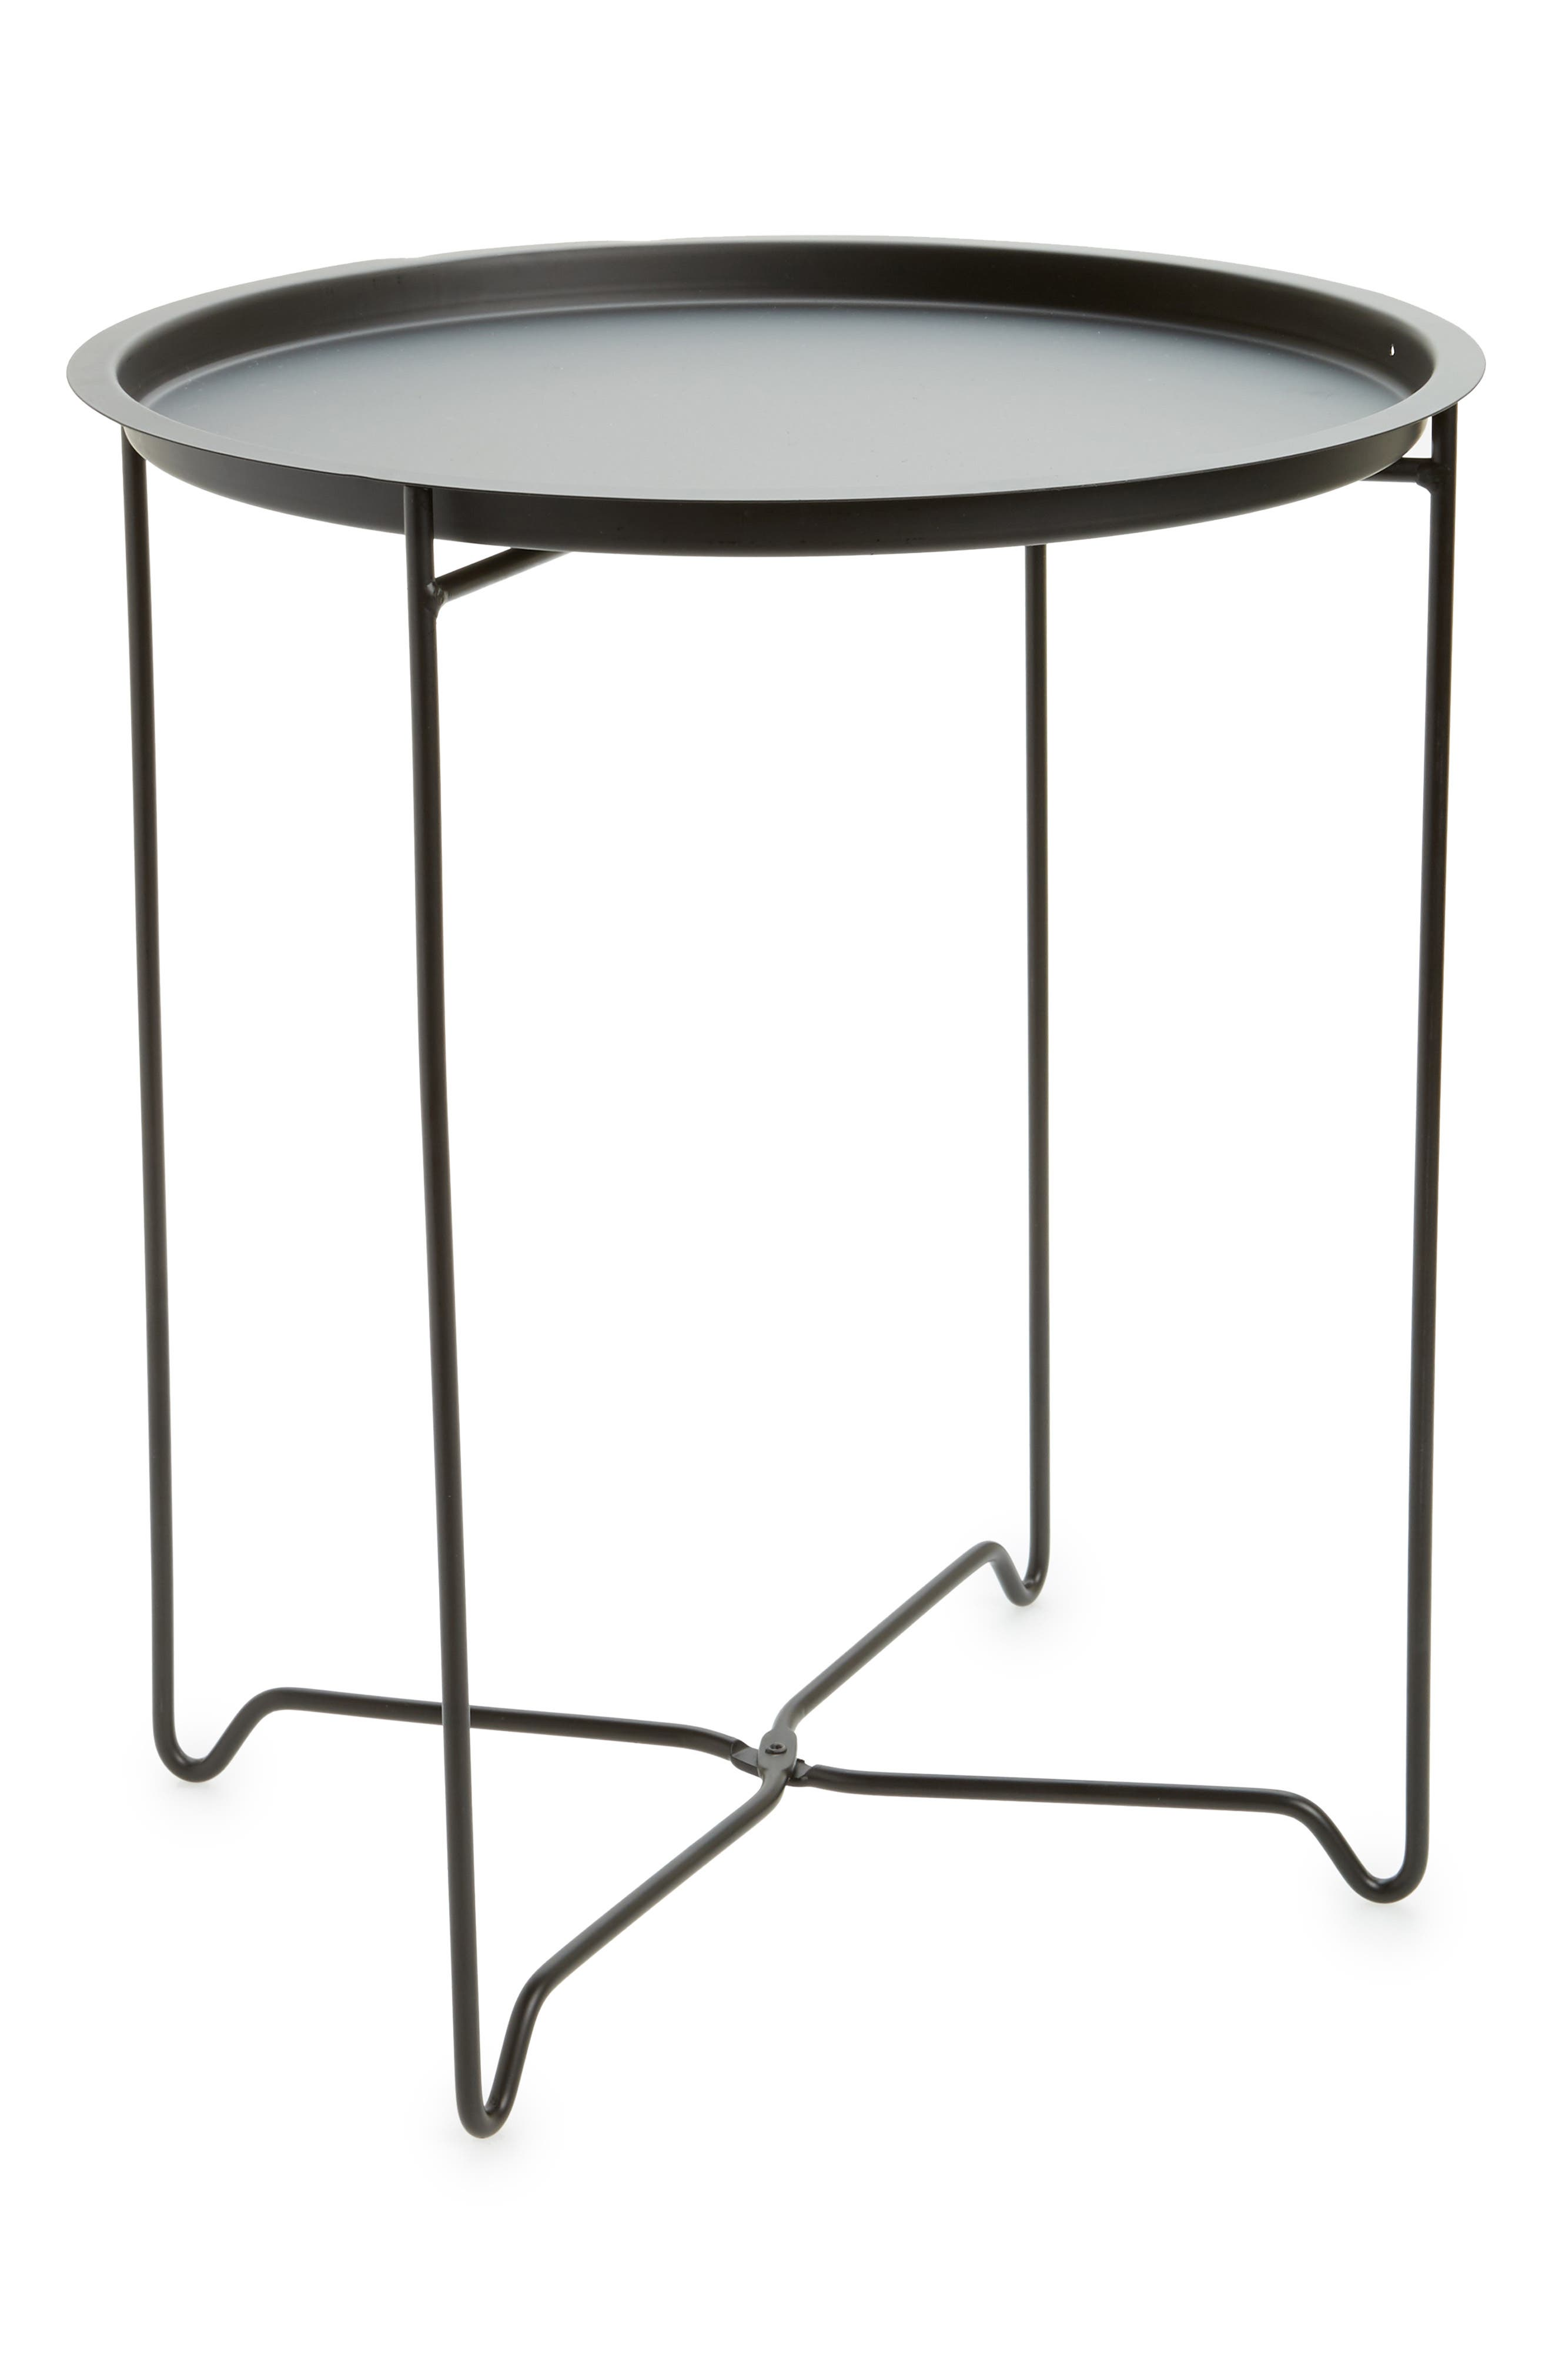 Home Foldable Accent Table,                             Main thumbnail 1, color,                             001